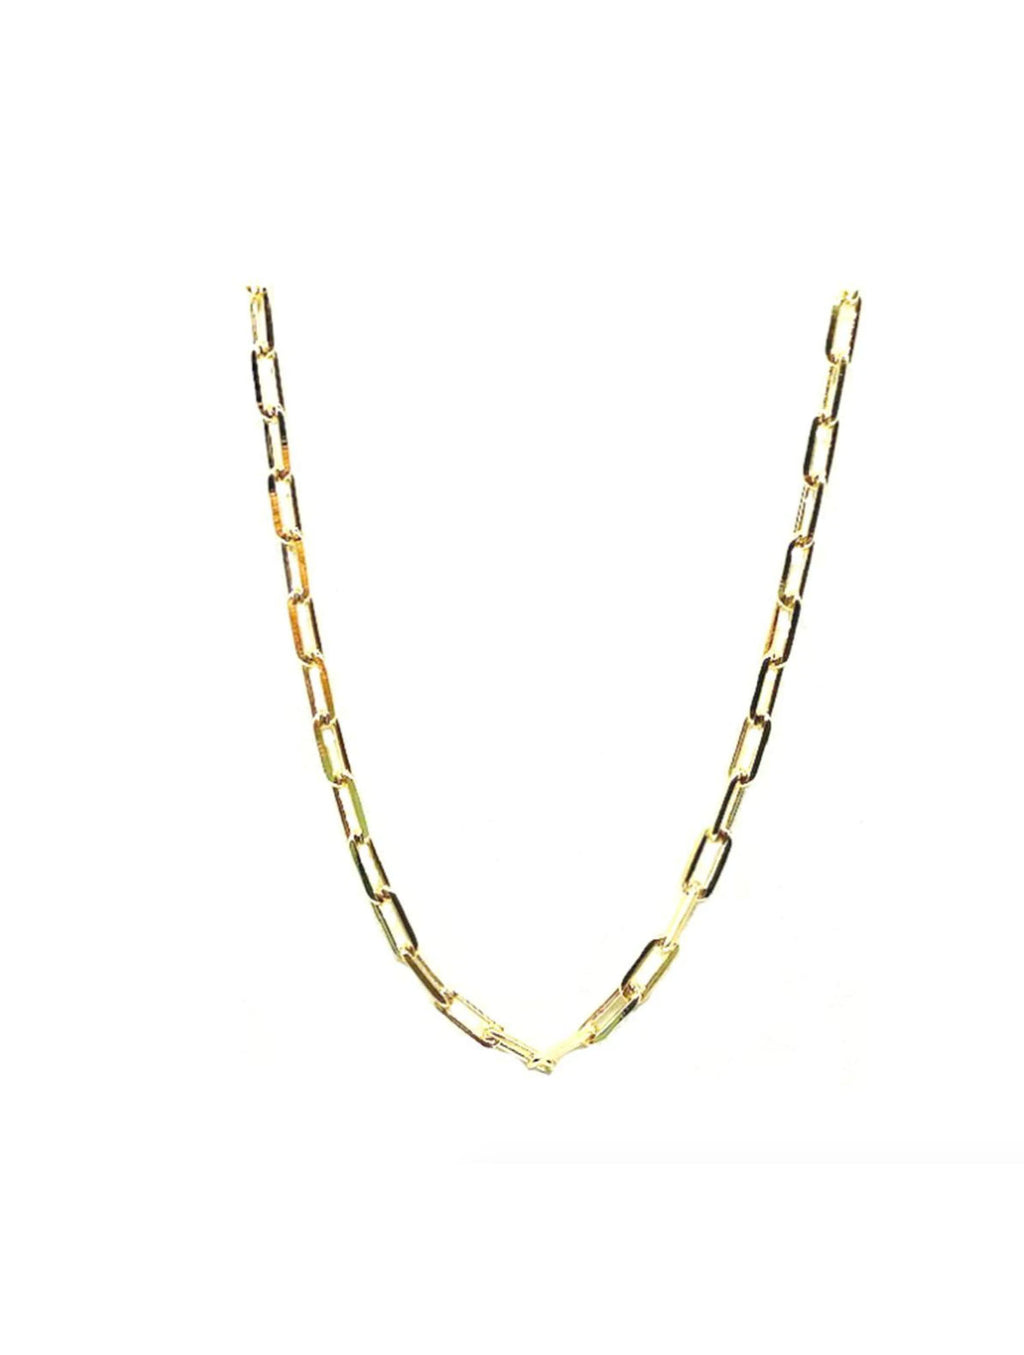 Athena Designs Thin Link Necklace in Gold